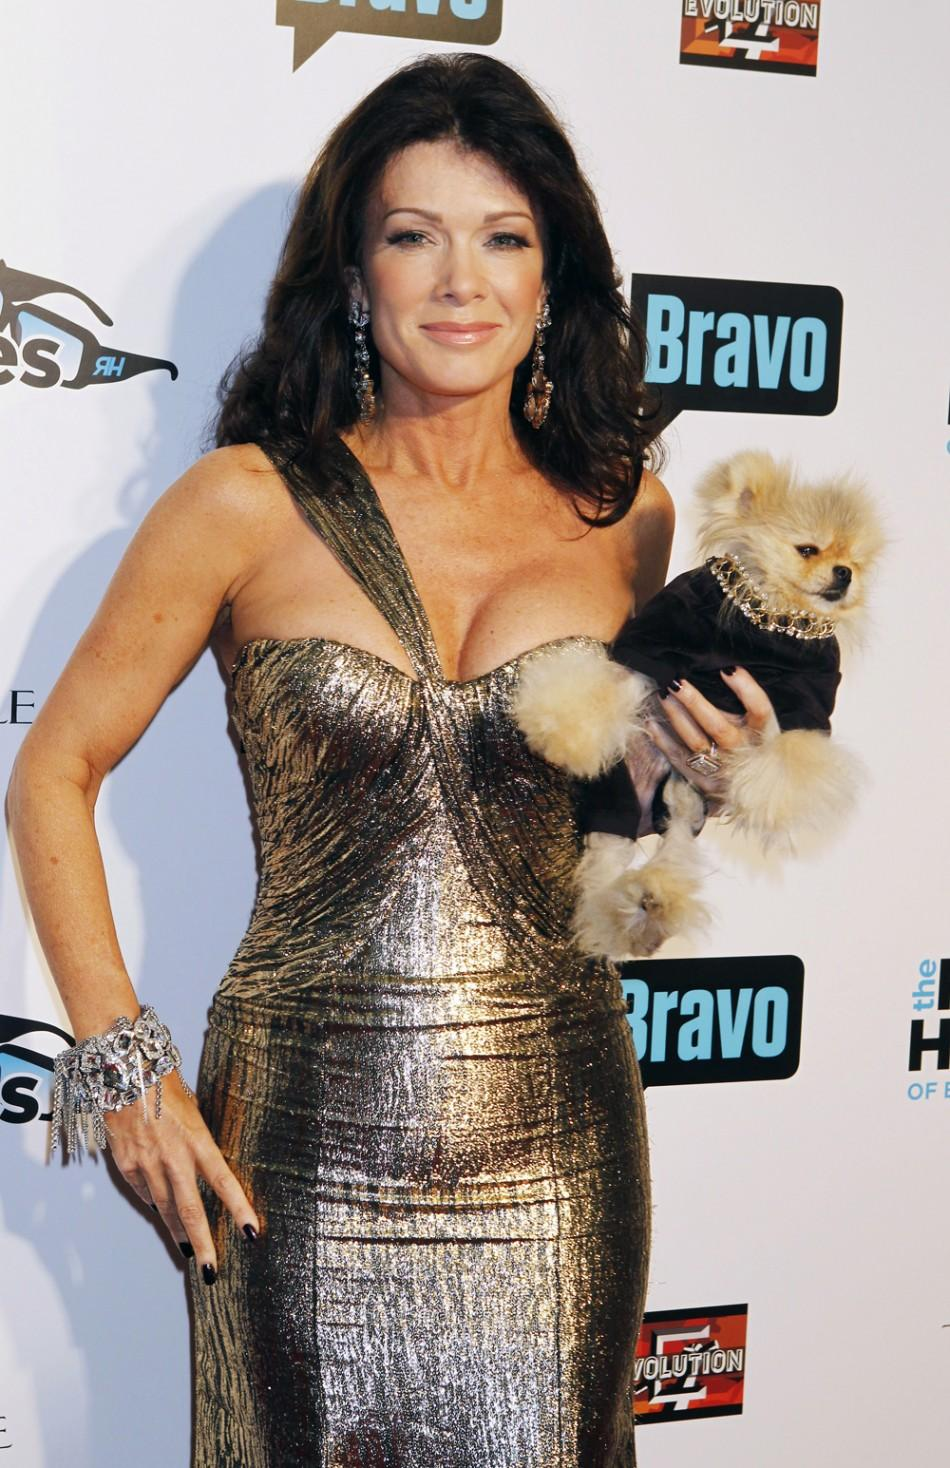 Cast member Lisa Vanderpump